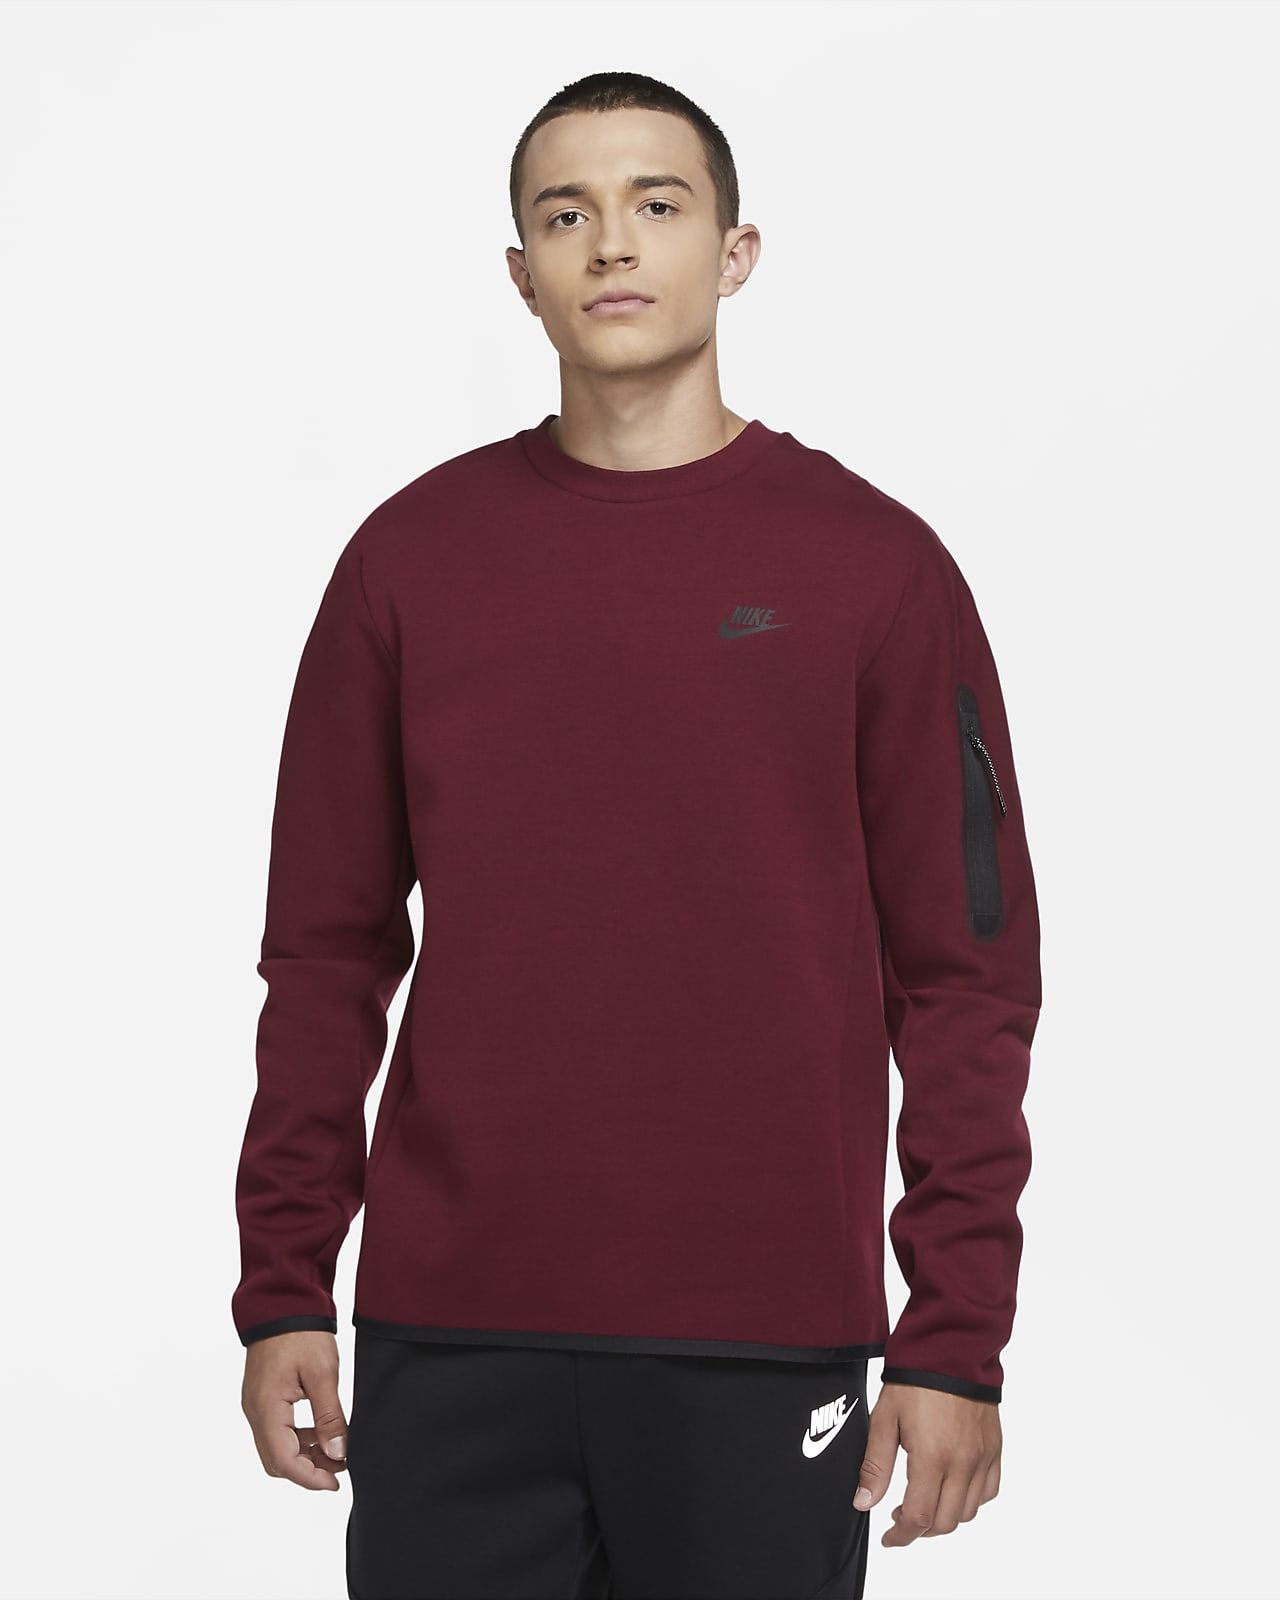 Nike Sportswear Tech Fleece Men's Crew